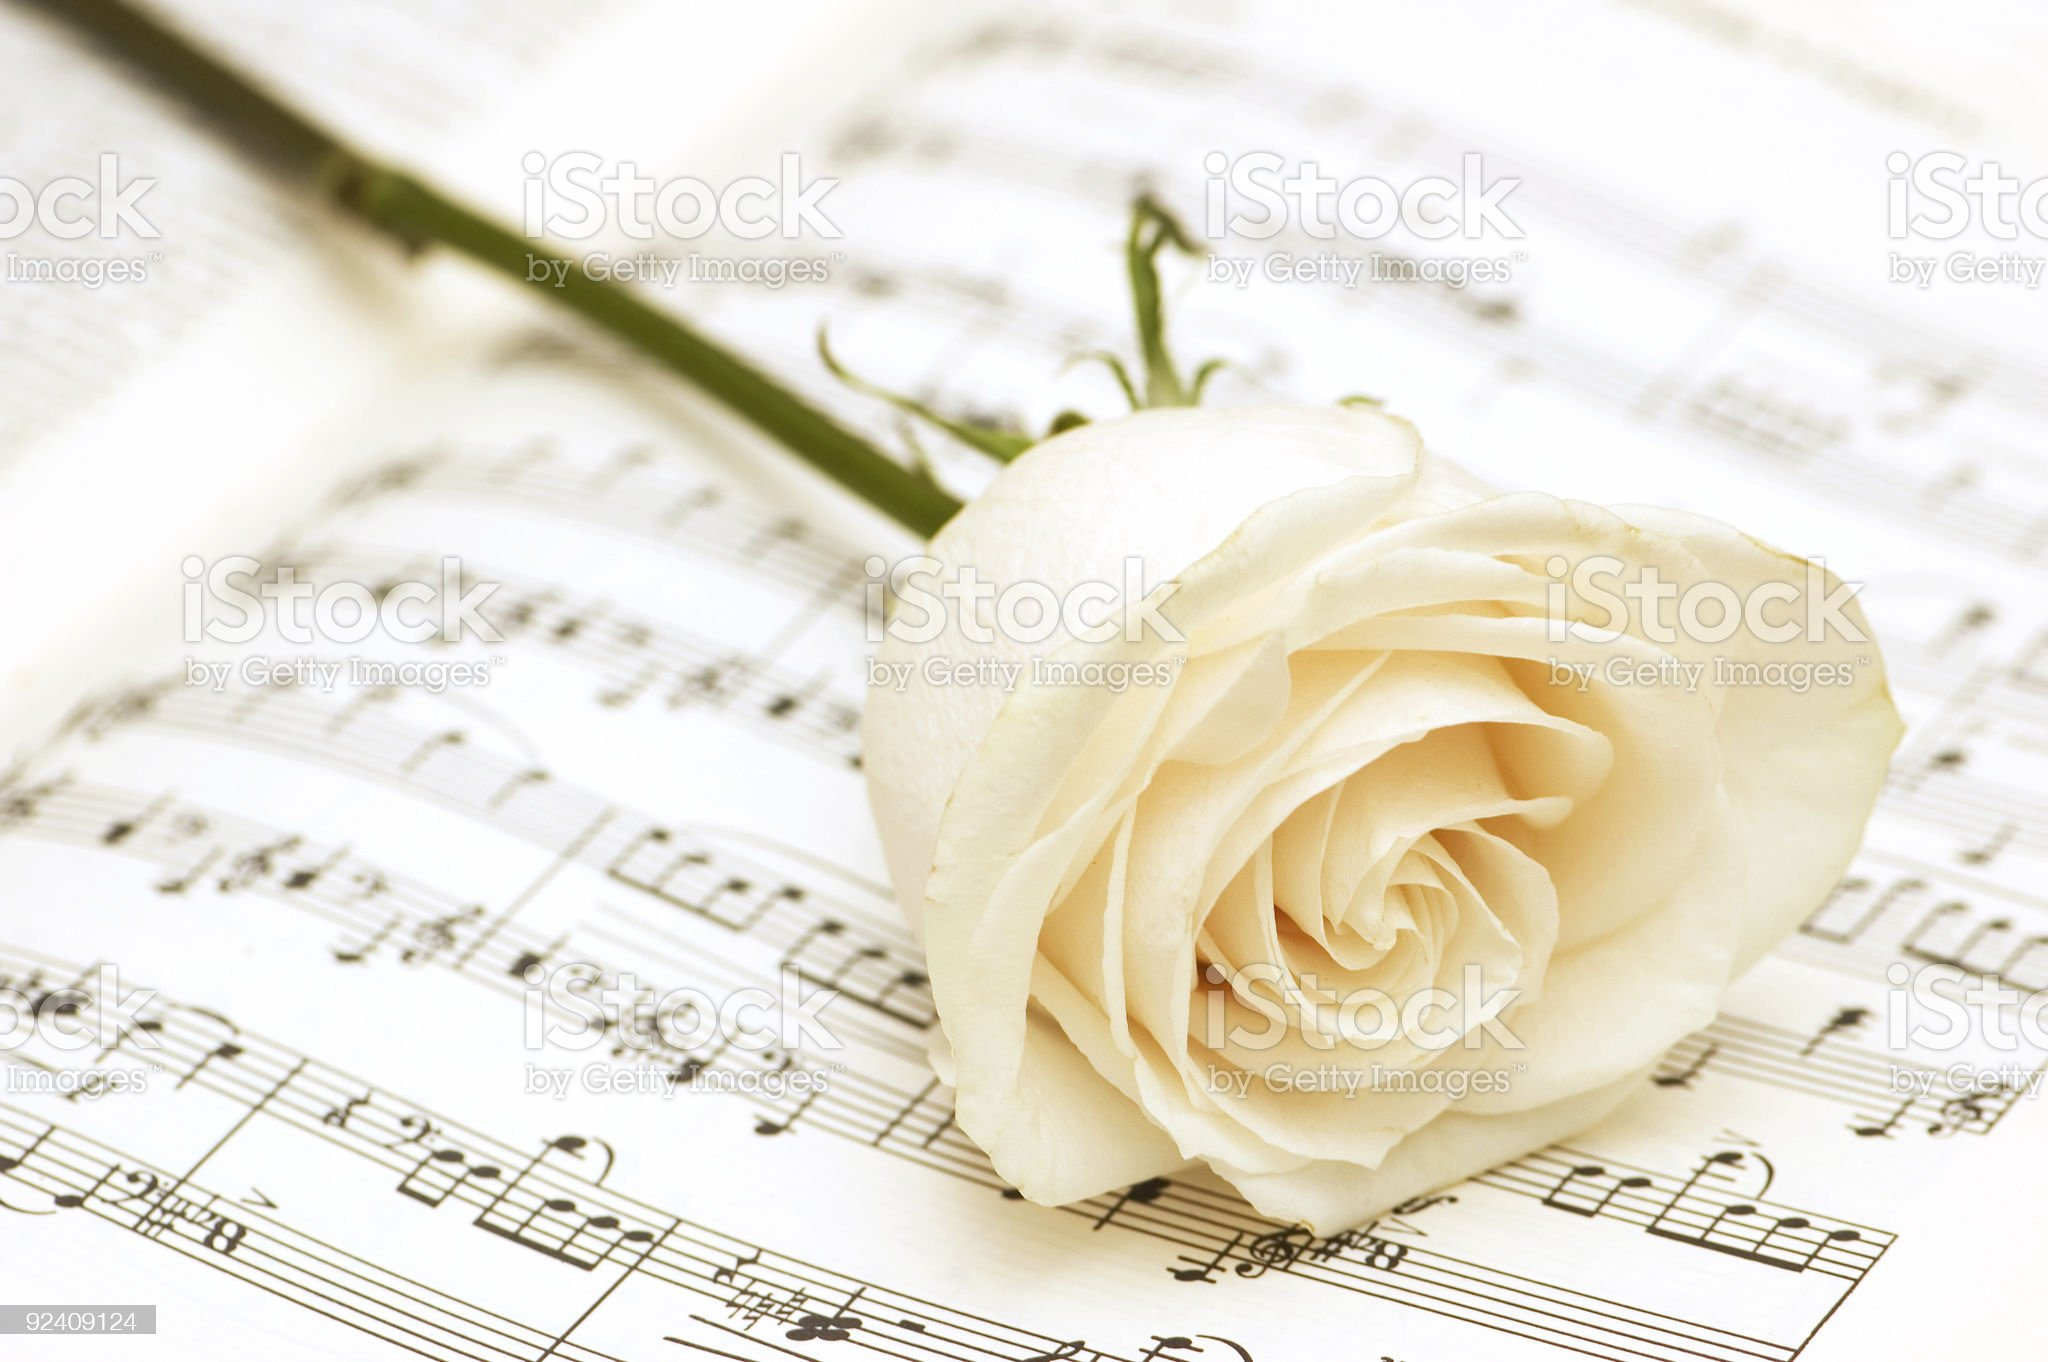 White rose on the musical notes page royalty-free stock photo